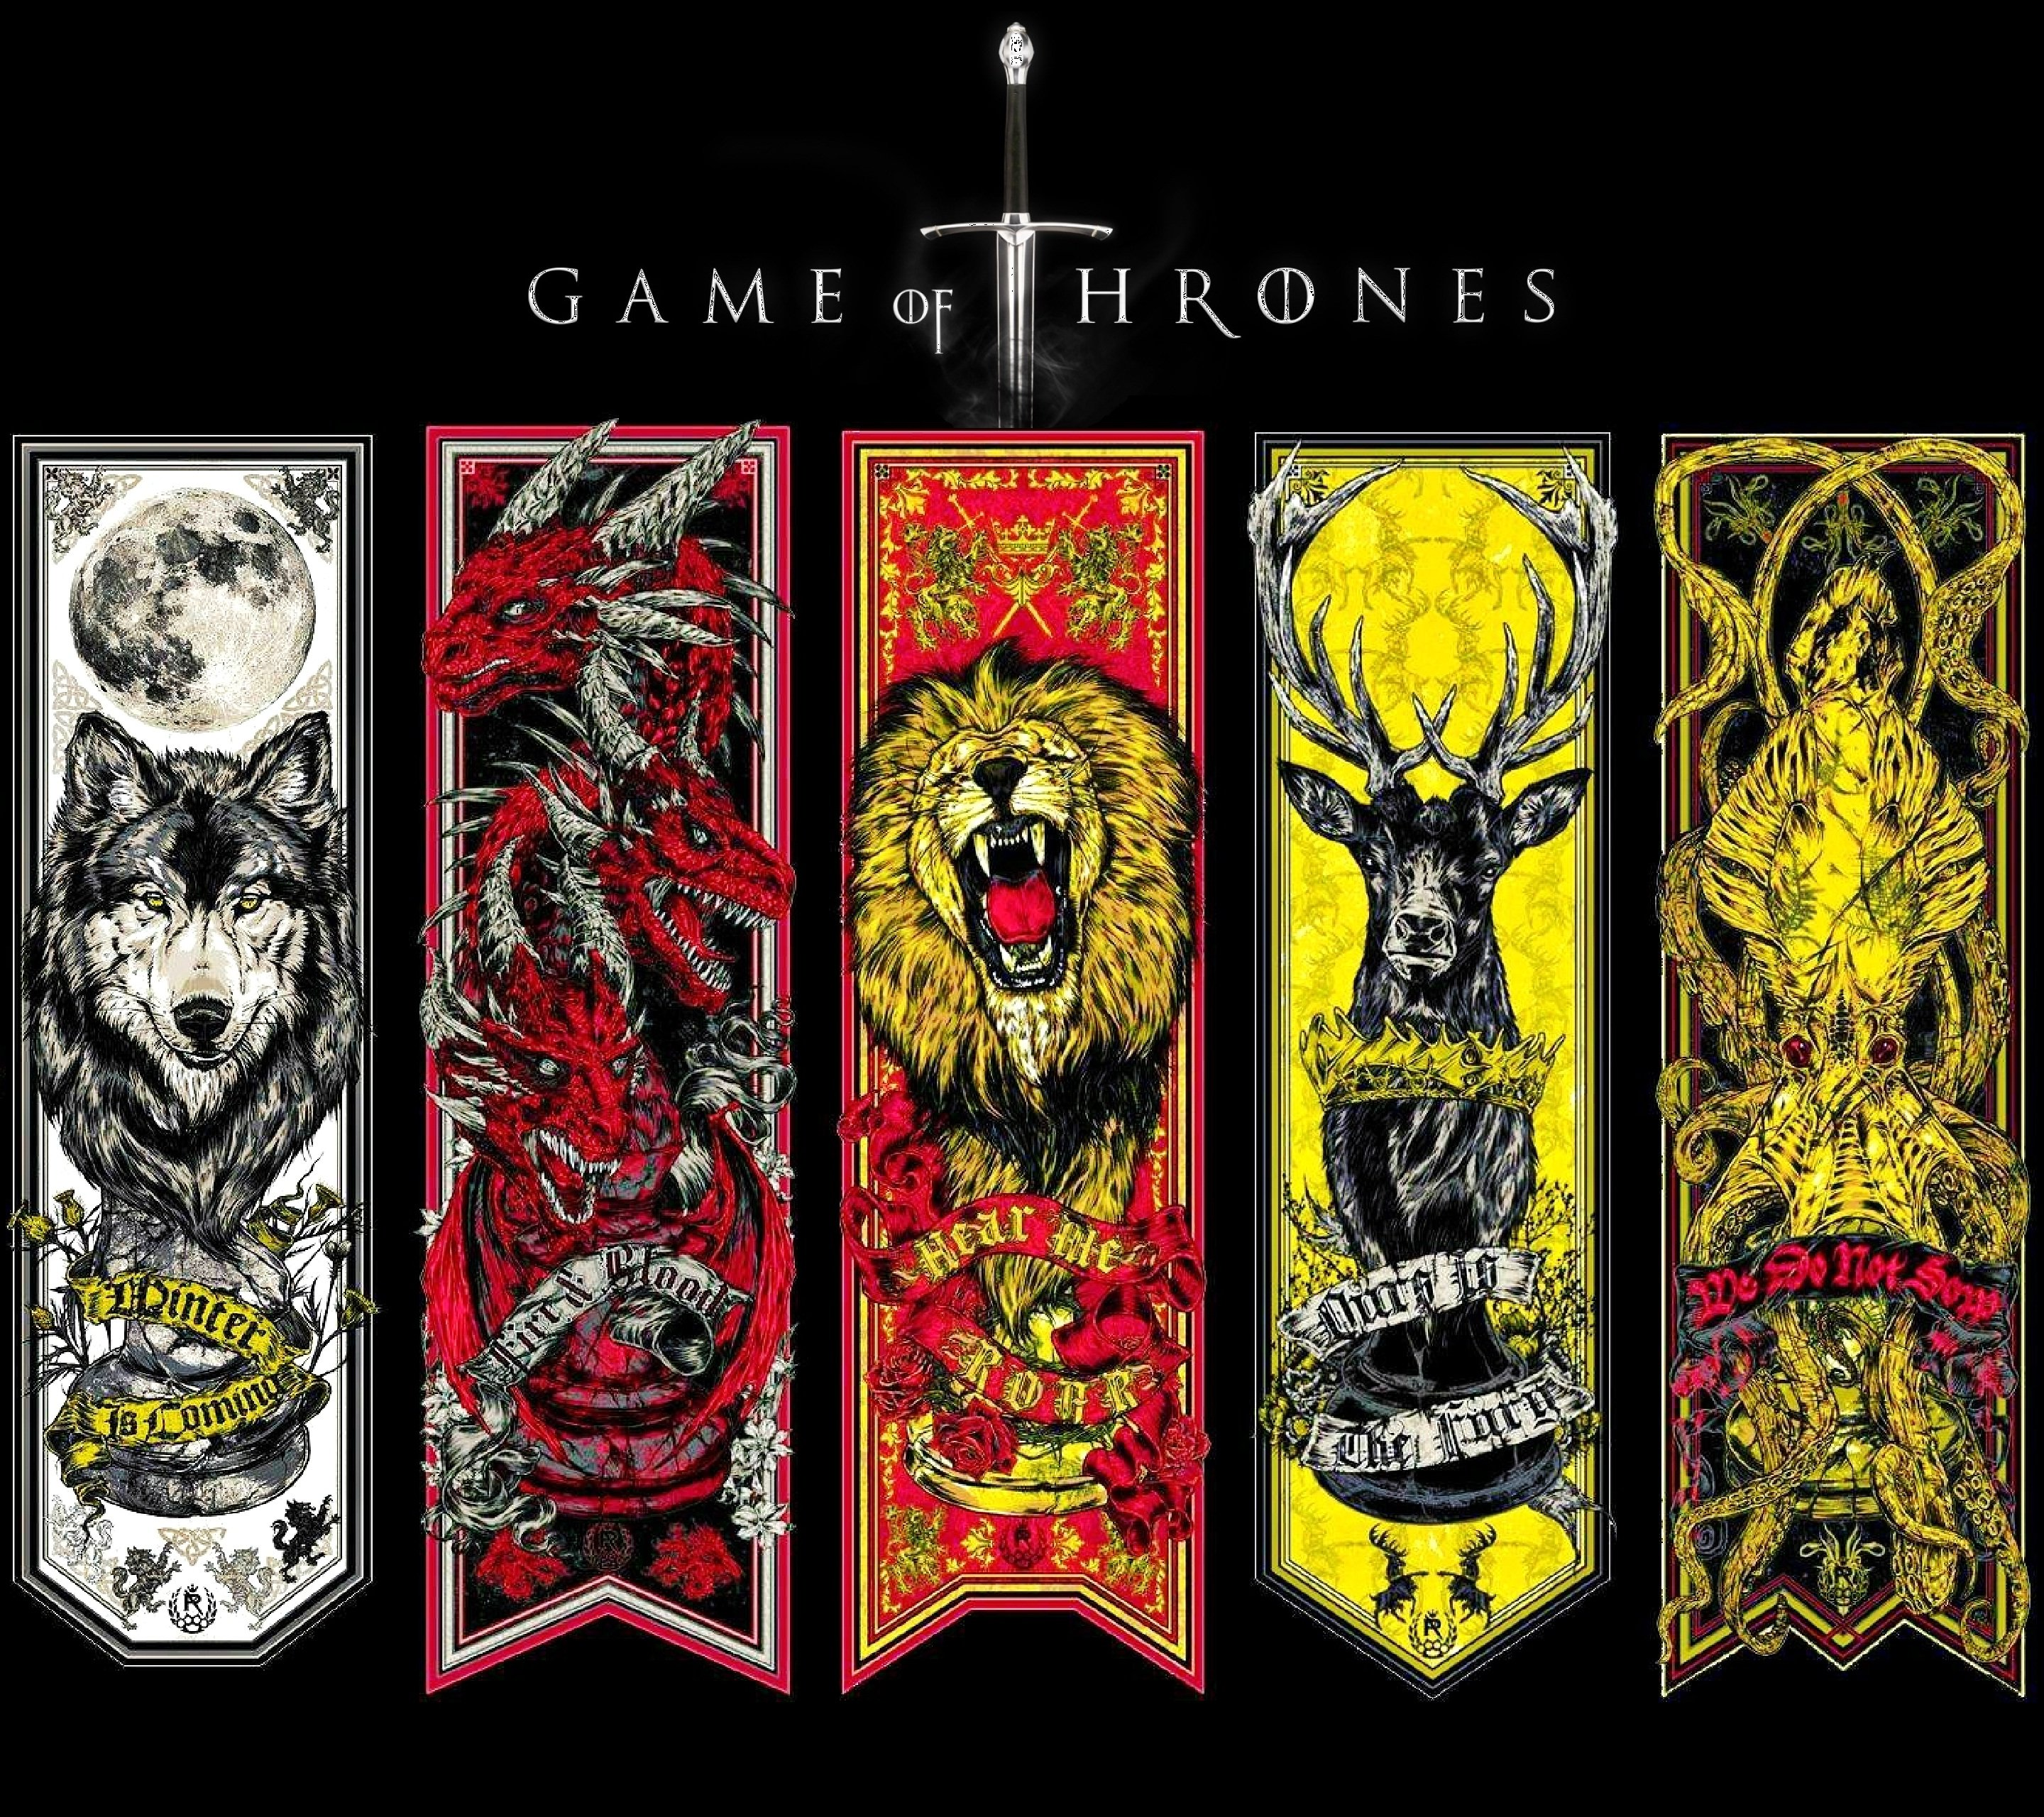 Game Of Thrones Throne Wallpaper: Game Of Thrones-wallpaper-10405143 Wallpaper